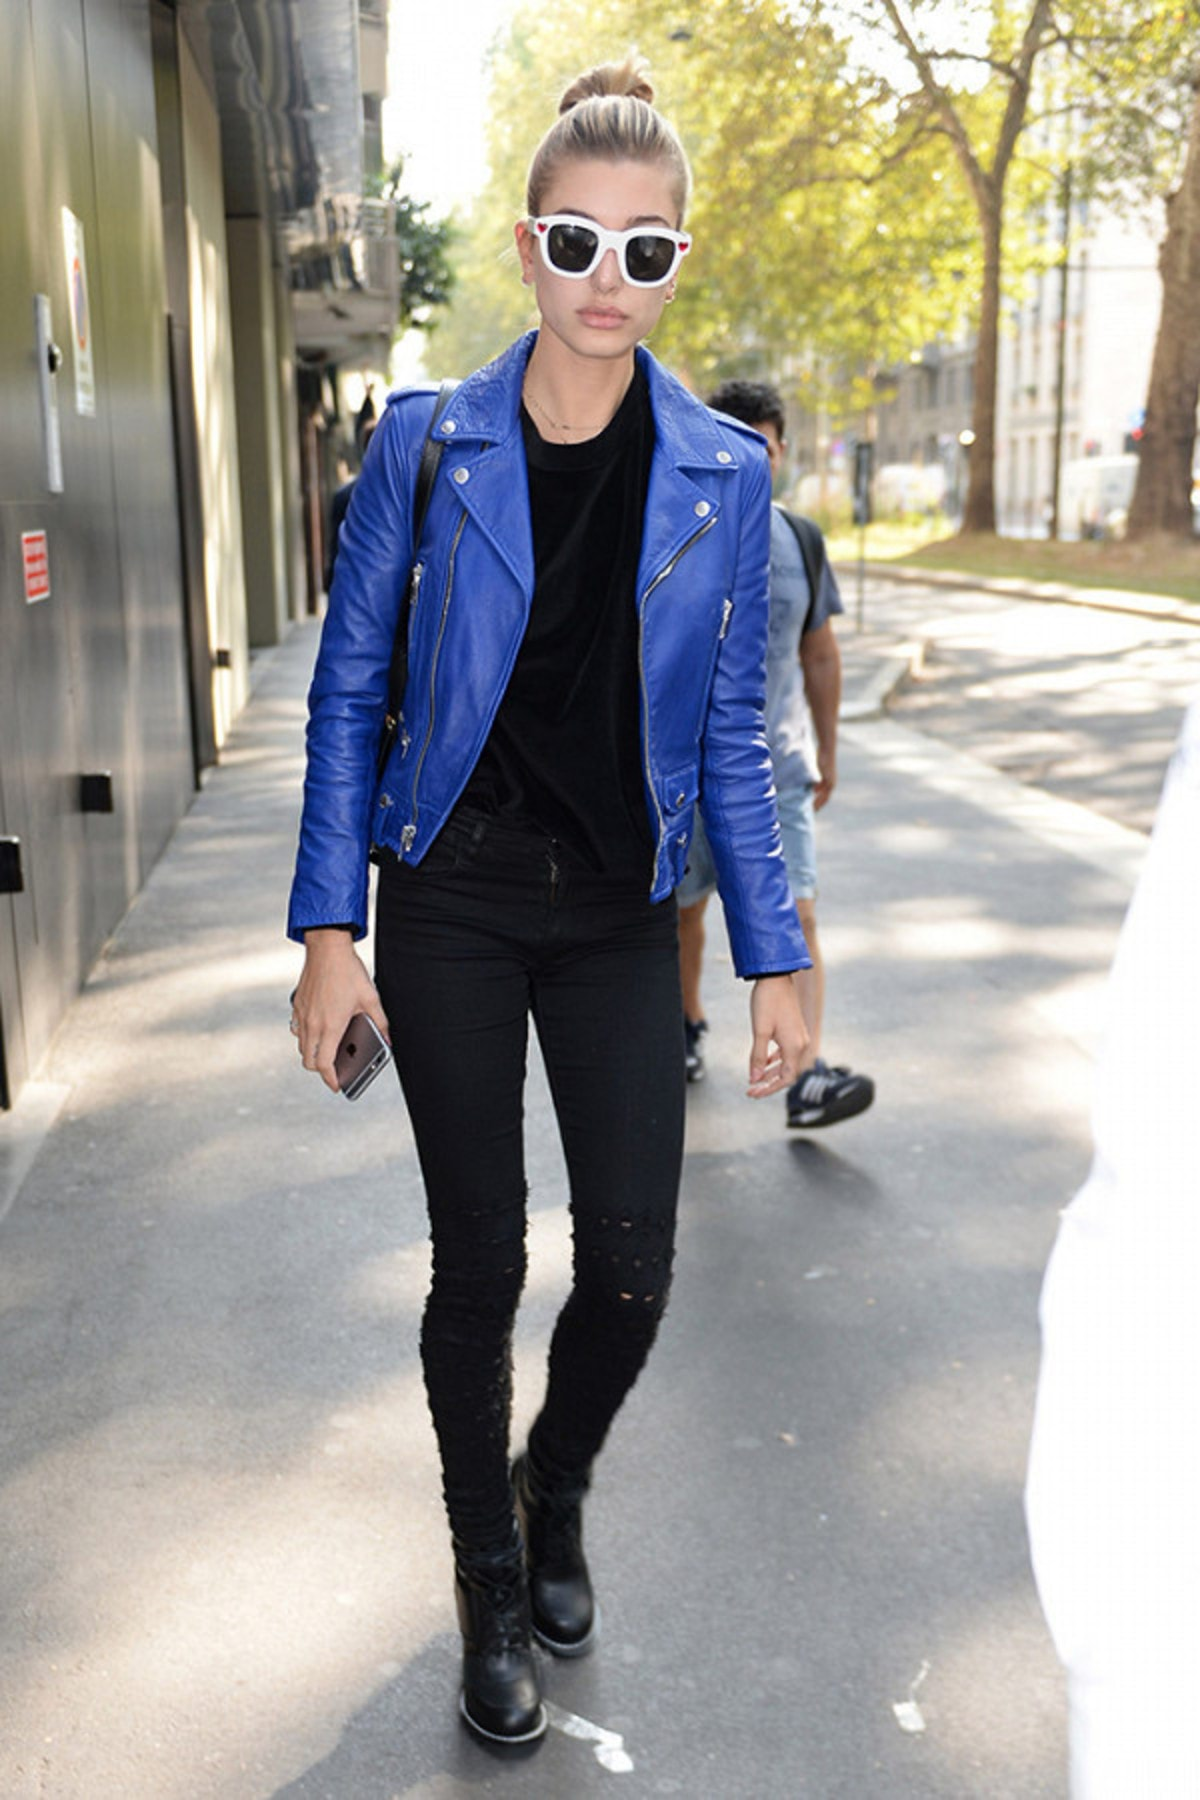 5-perfect-fall-outfit-ideasall-from-hailey-baldwin-2005510.600x0c